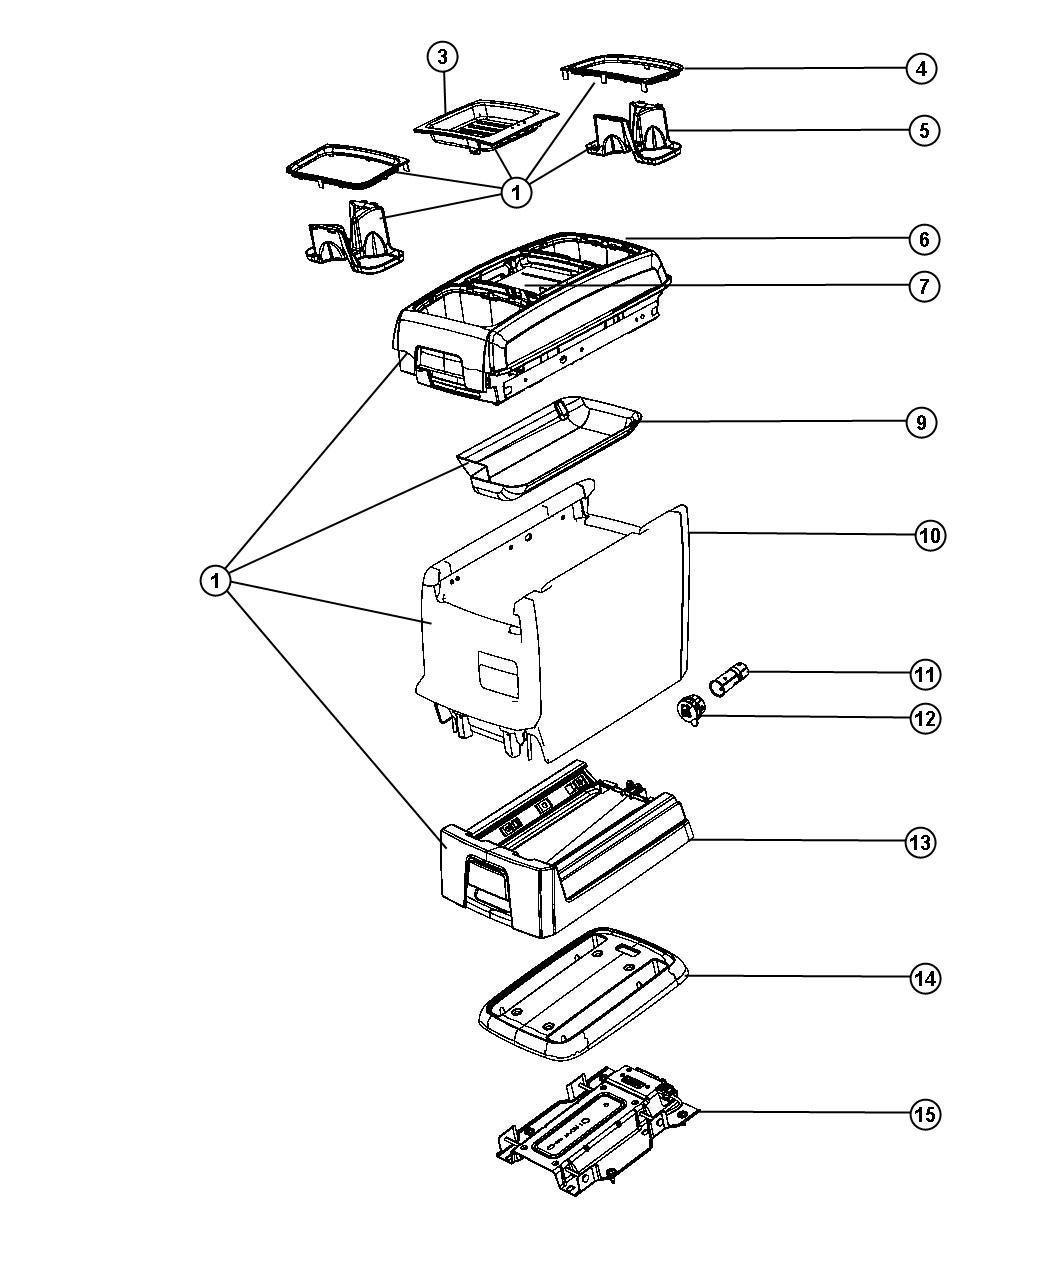 Service manual [1992 Chrysler Town Country Timing Belt